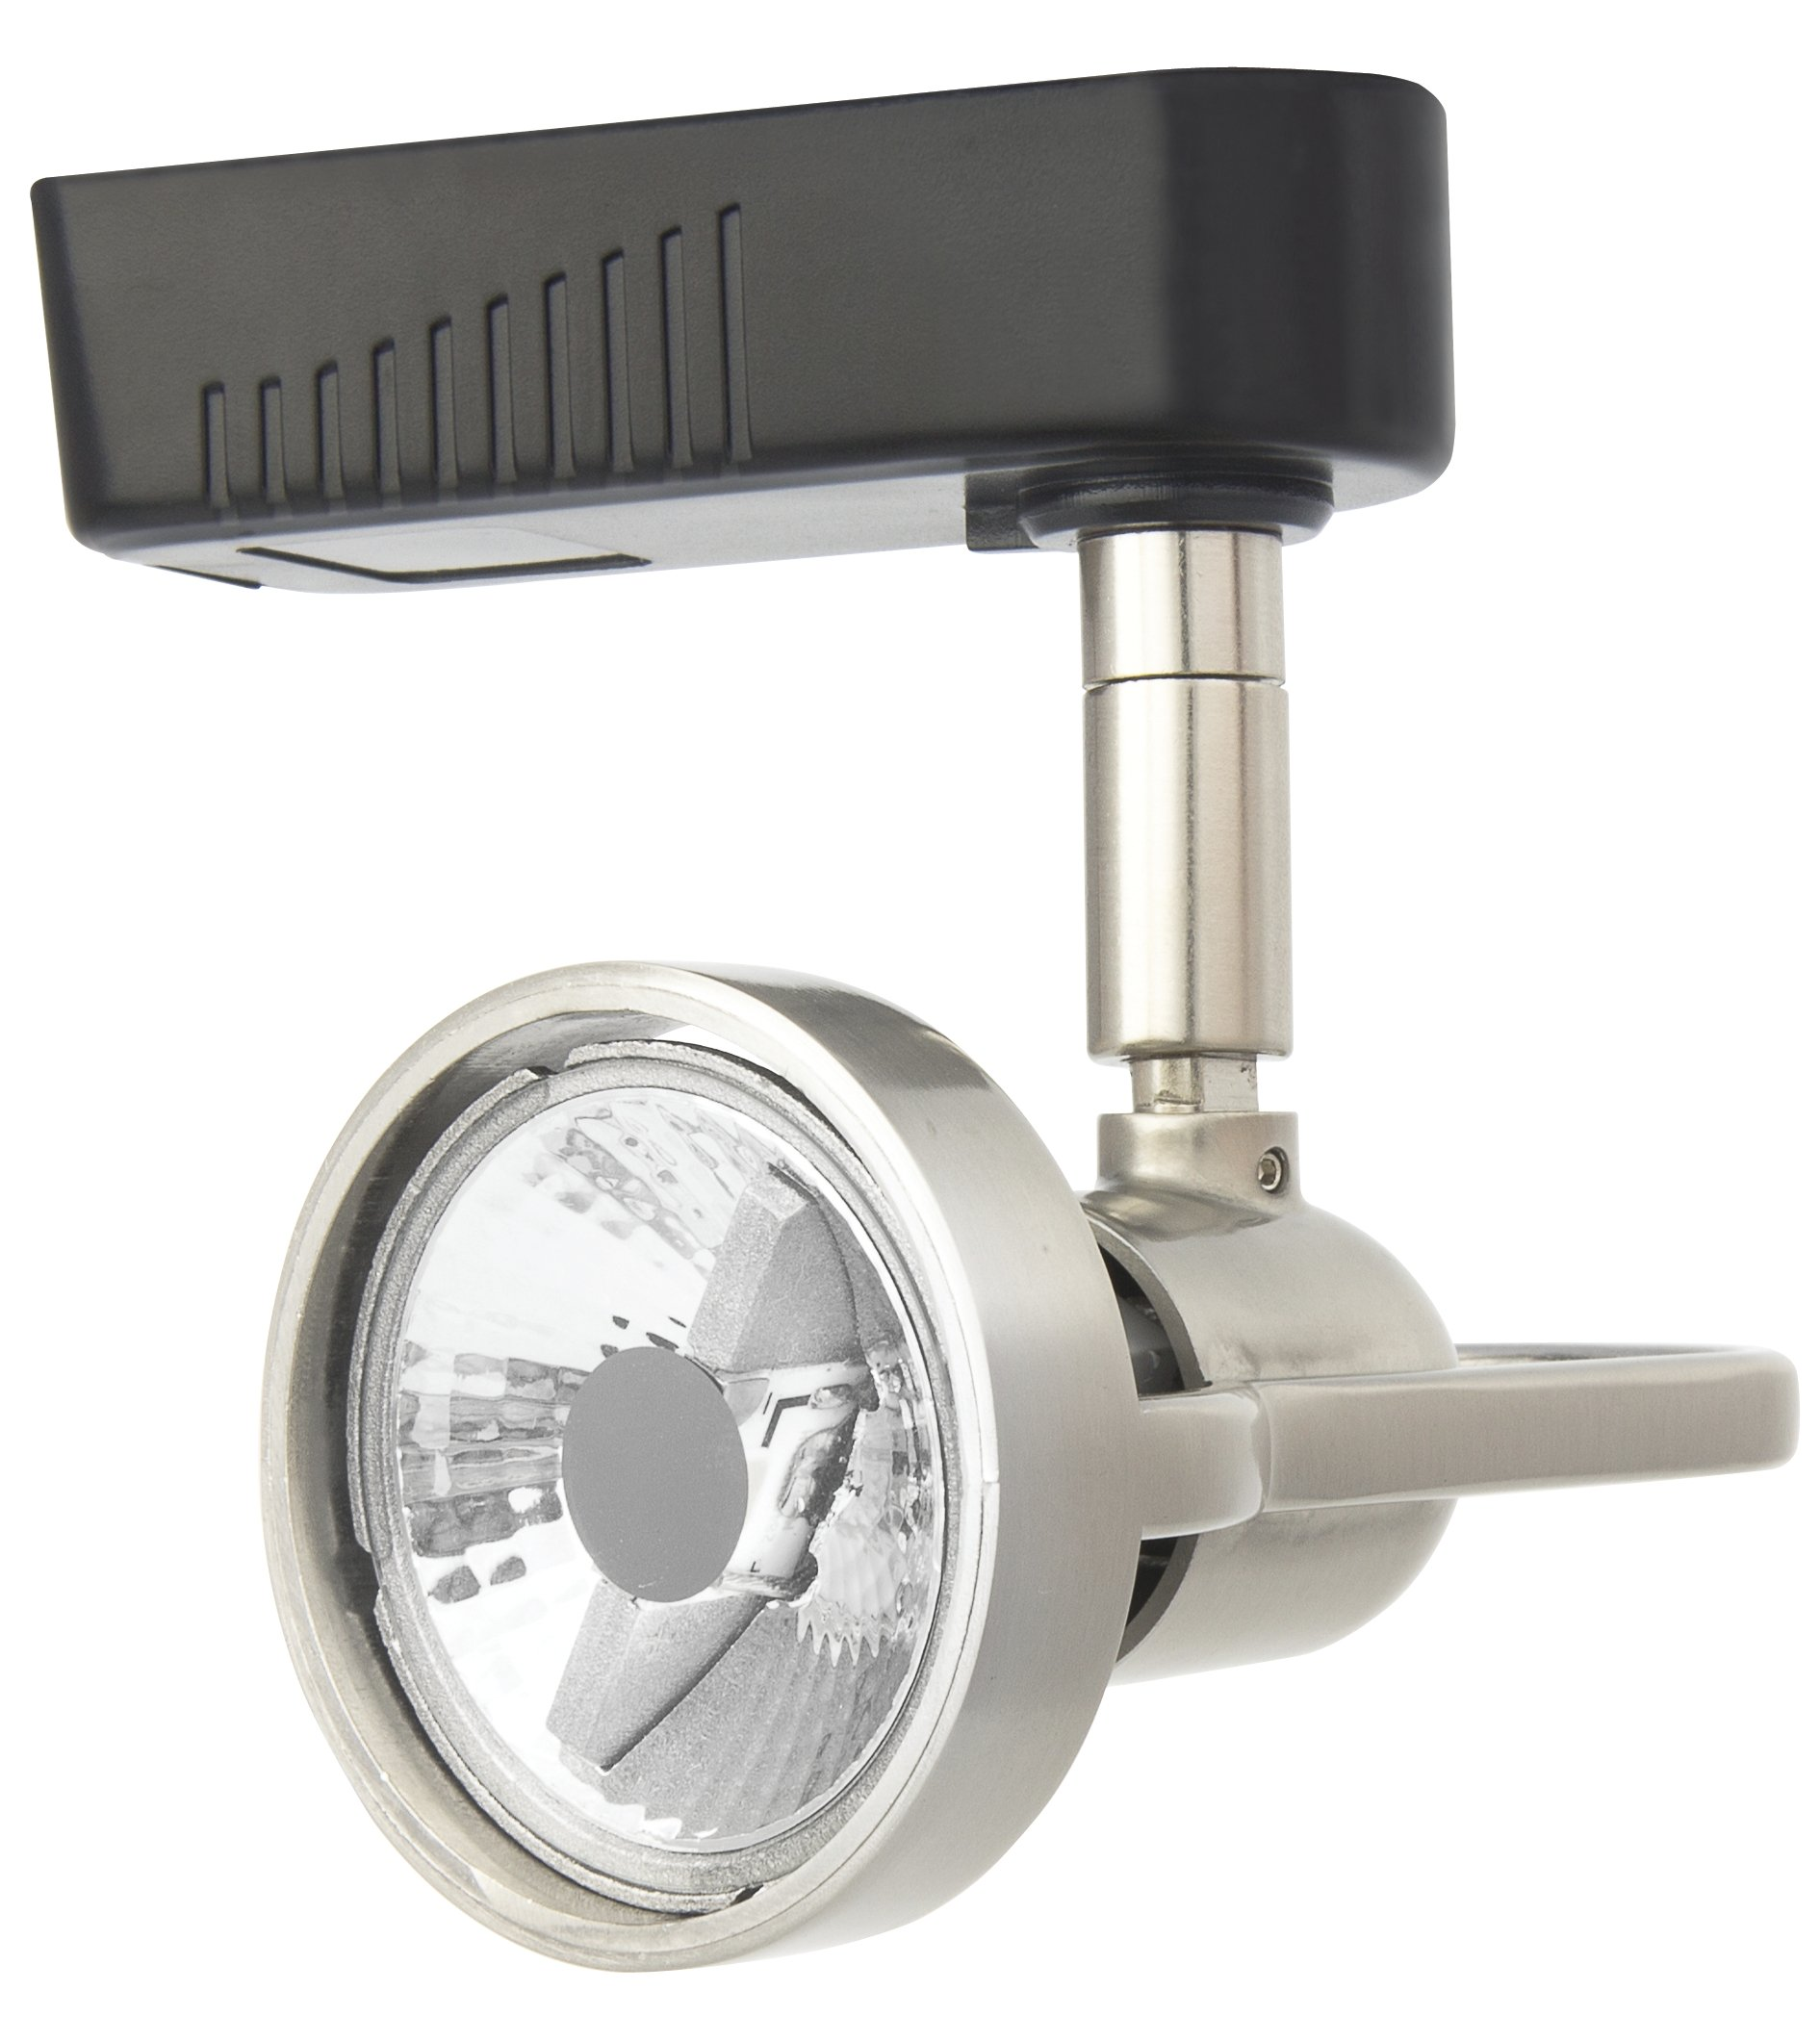 Lithonia Lighting LTH2000 MR16 BN M24 1-Light Front Loading Commercial Track Head, 1-Circuit, Steel, Mr16-Compatible Led, Brushed Nickel